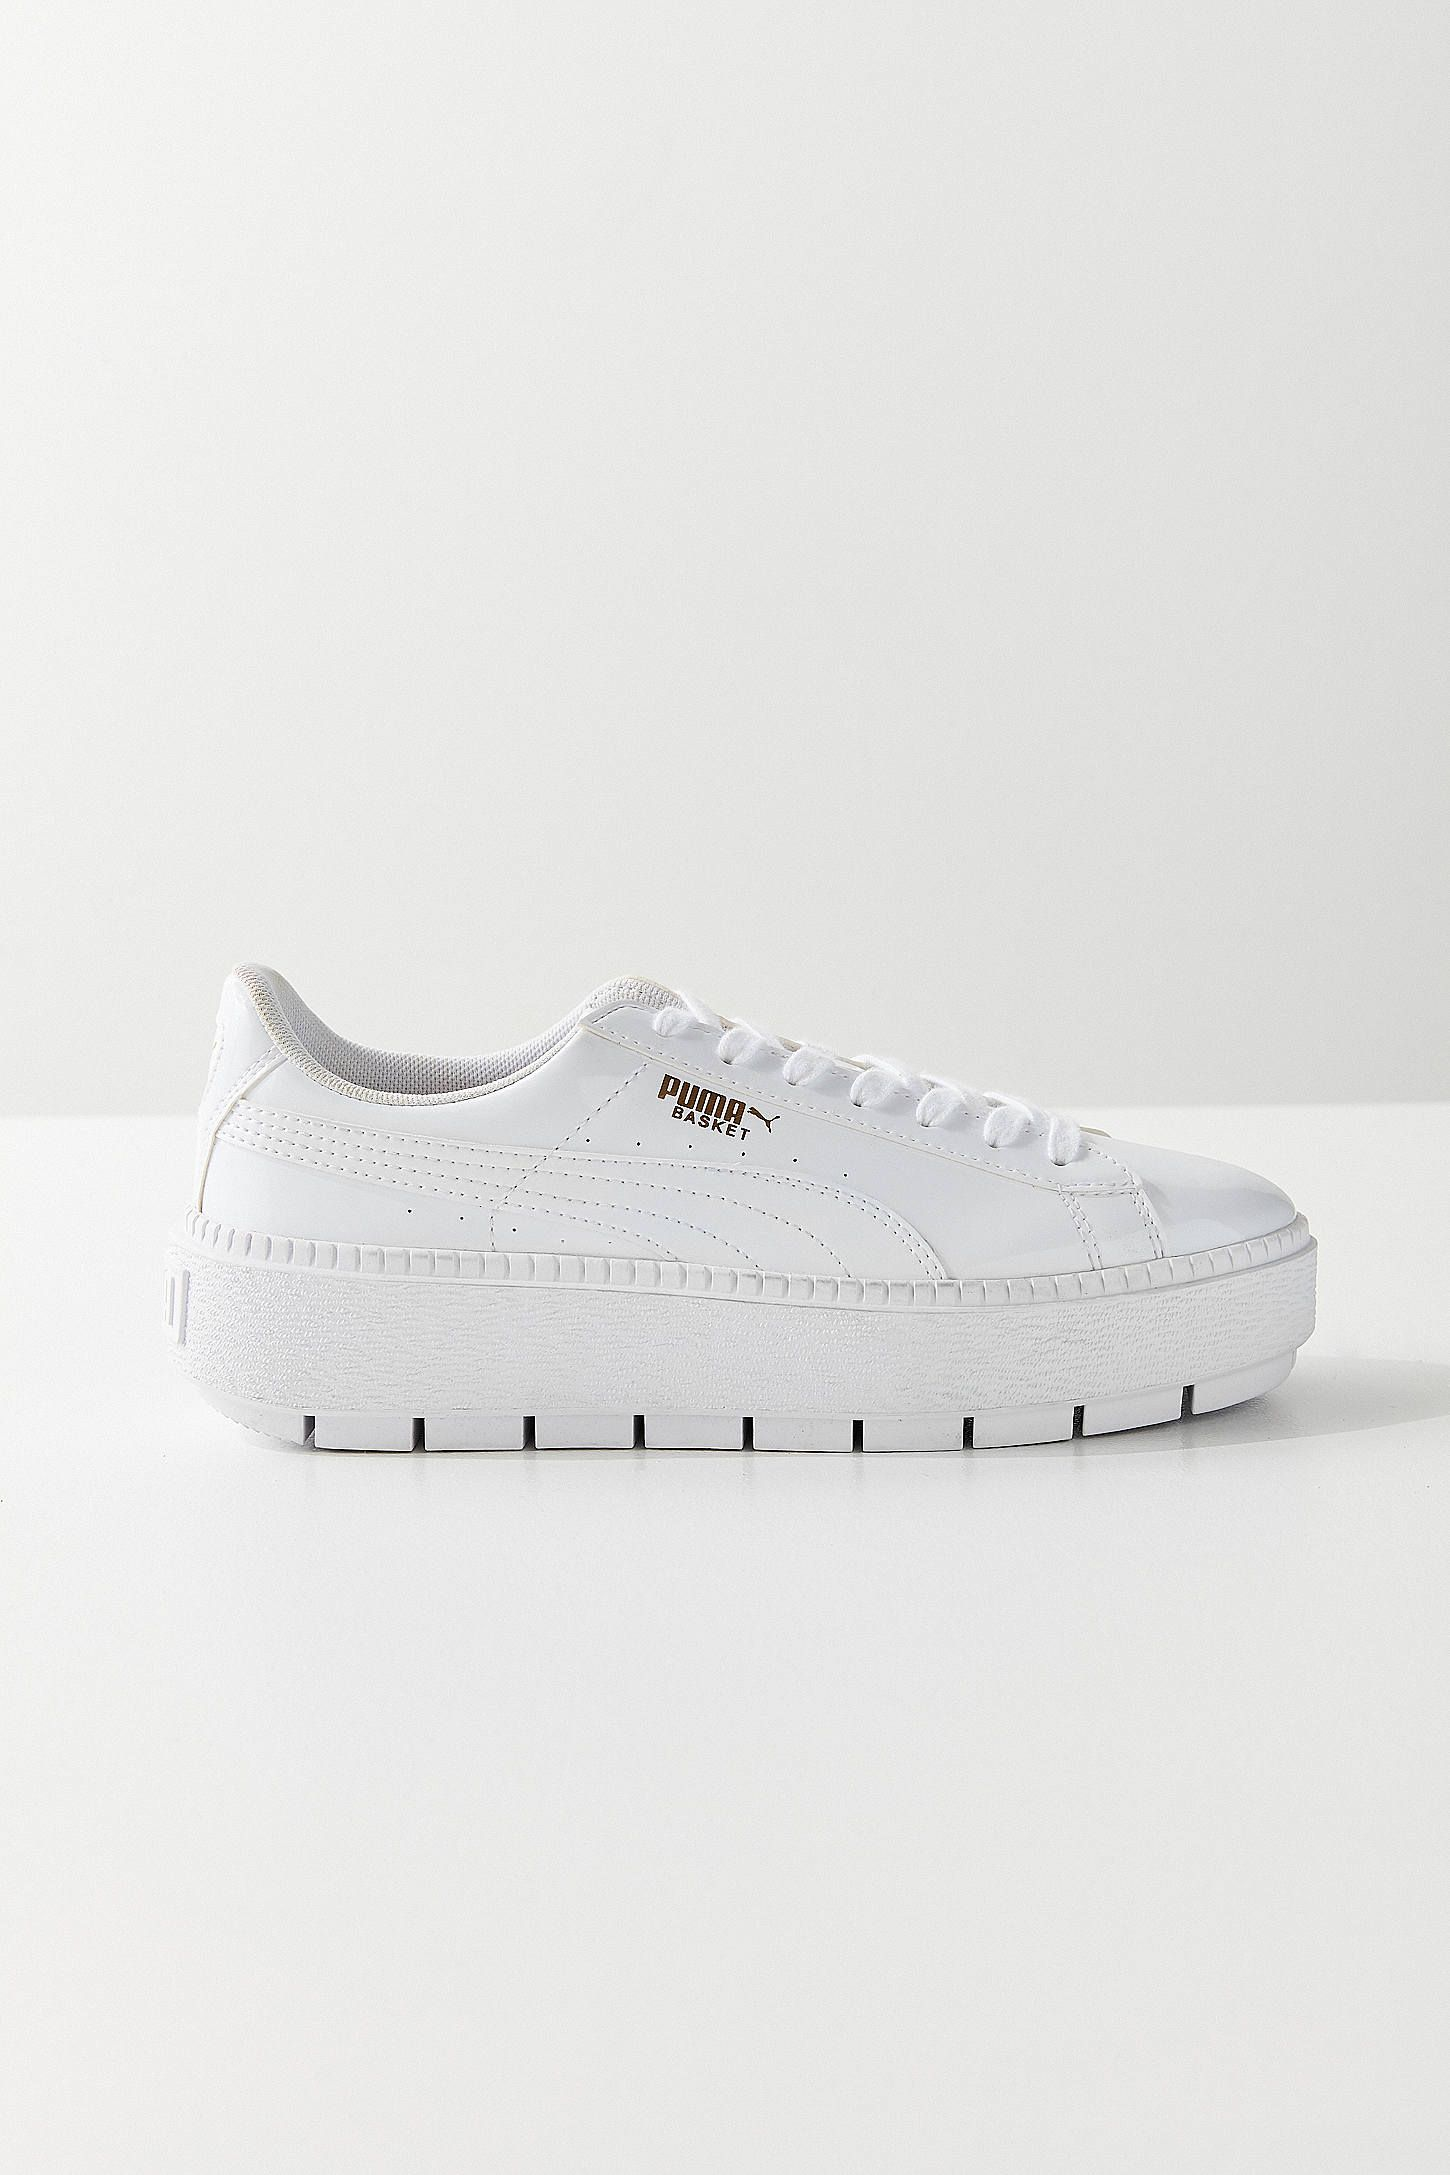 efa399fad28 Shop Puma Basket Platform Trace P Sneaker at Urban Outfitters today. We  carry all the latest styles